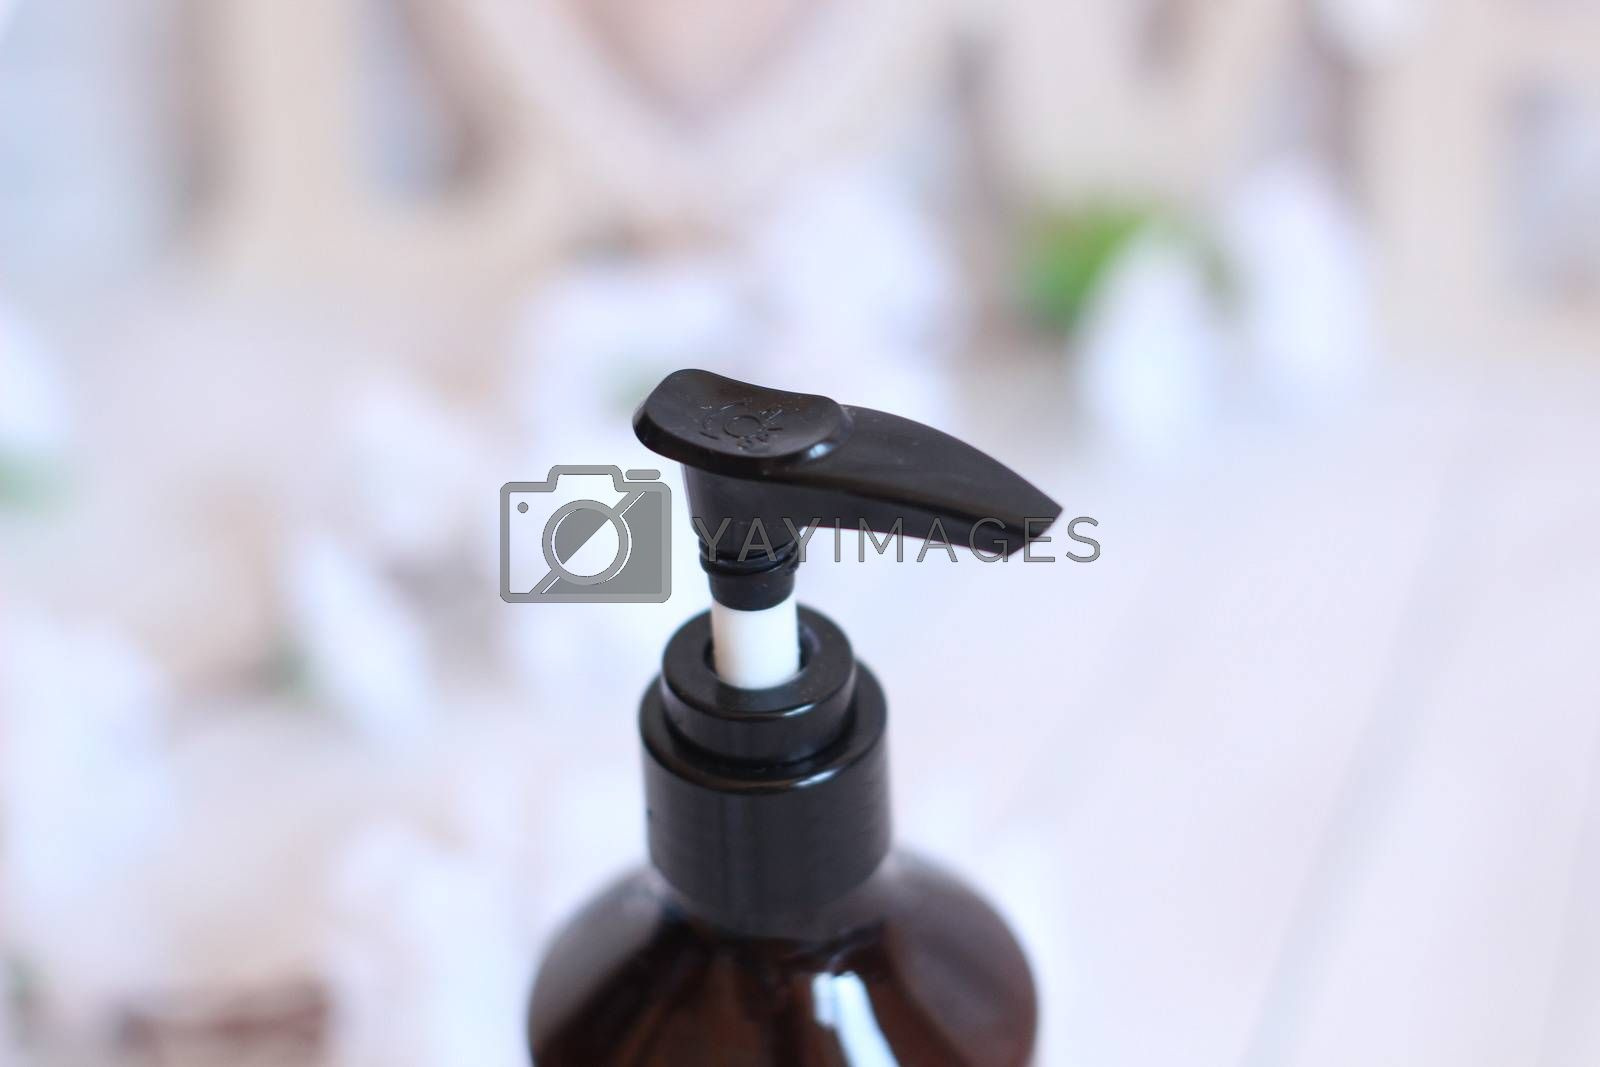 Transparent brown Bottles for Shampoo, Soap or other cosmetic on white background.